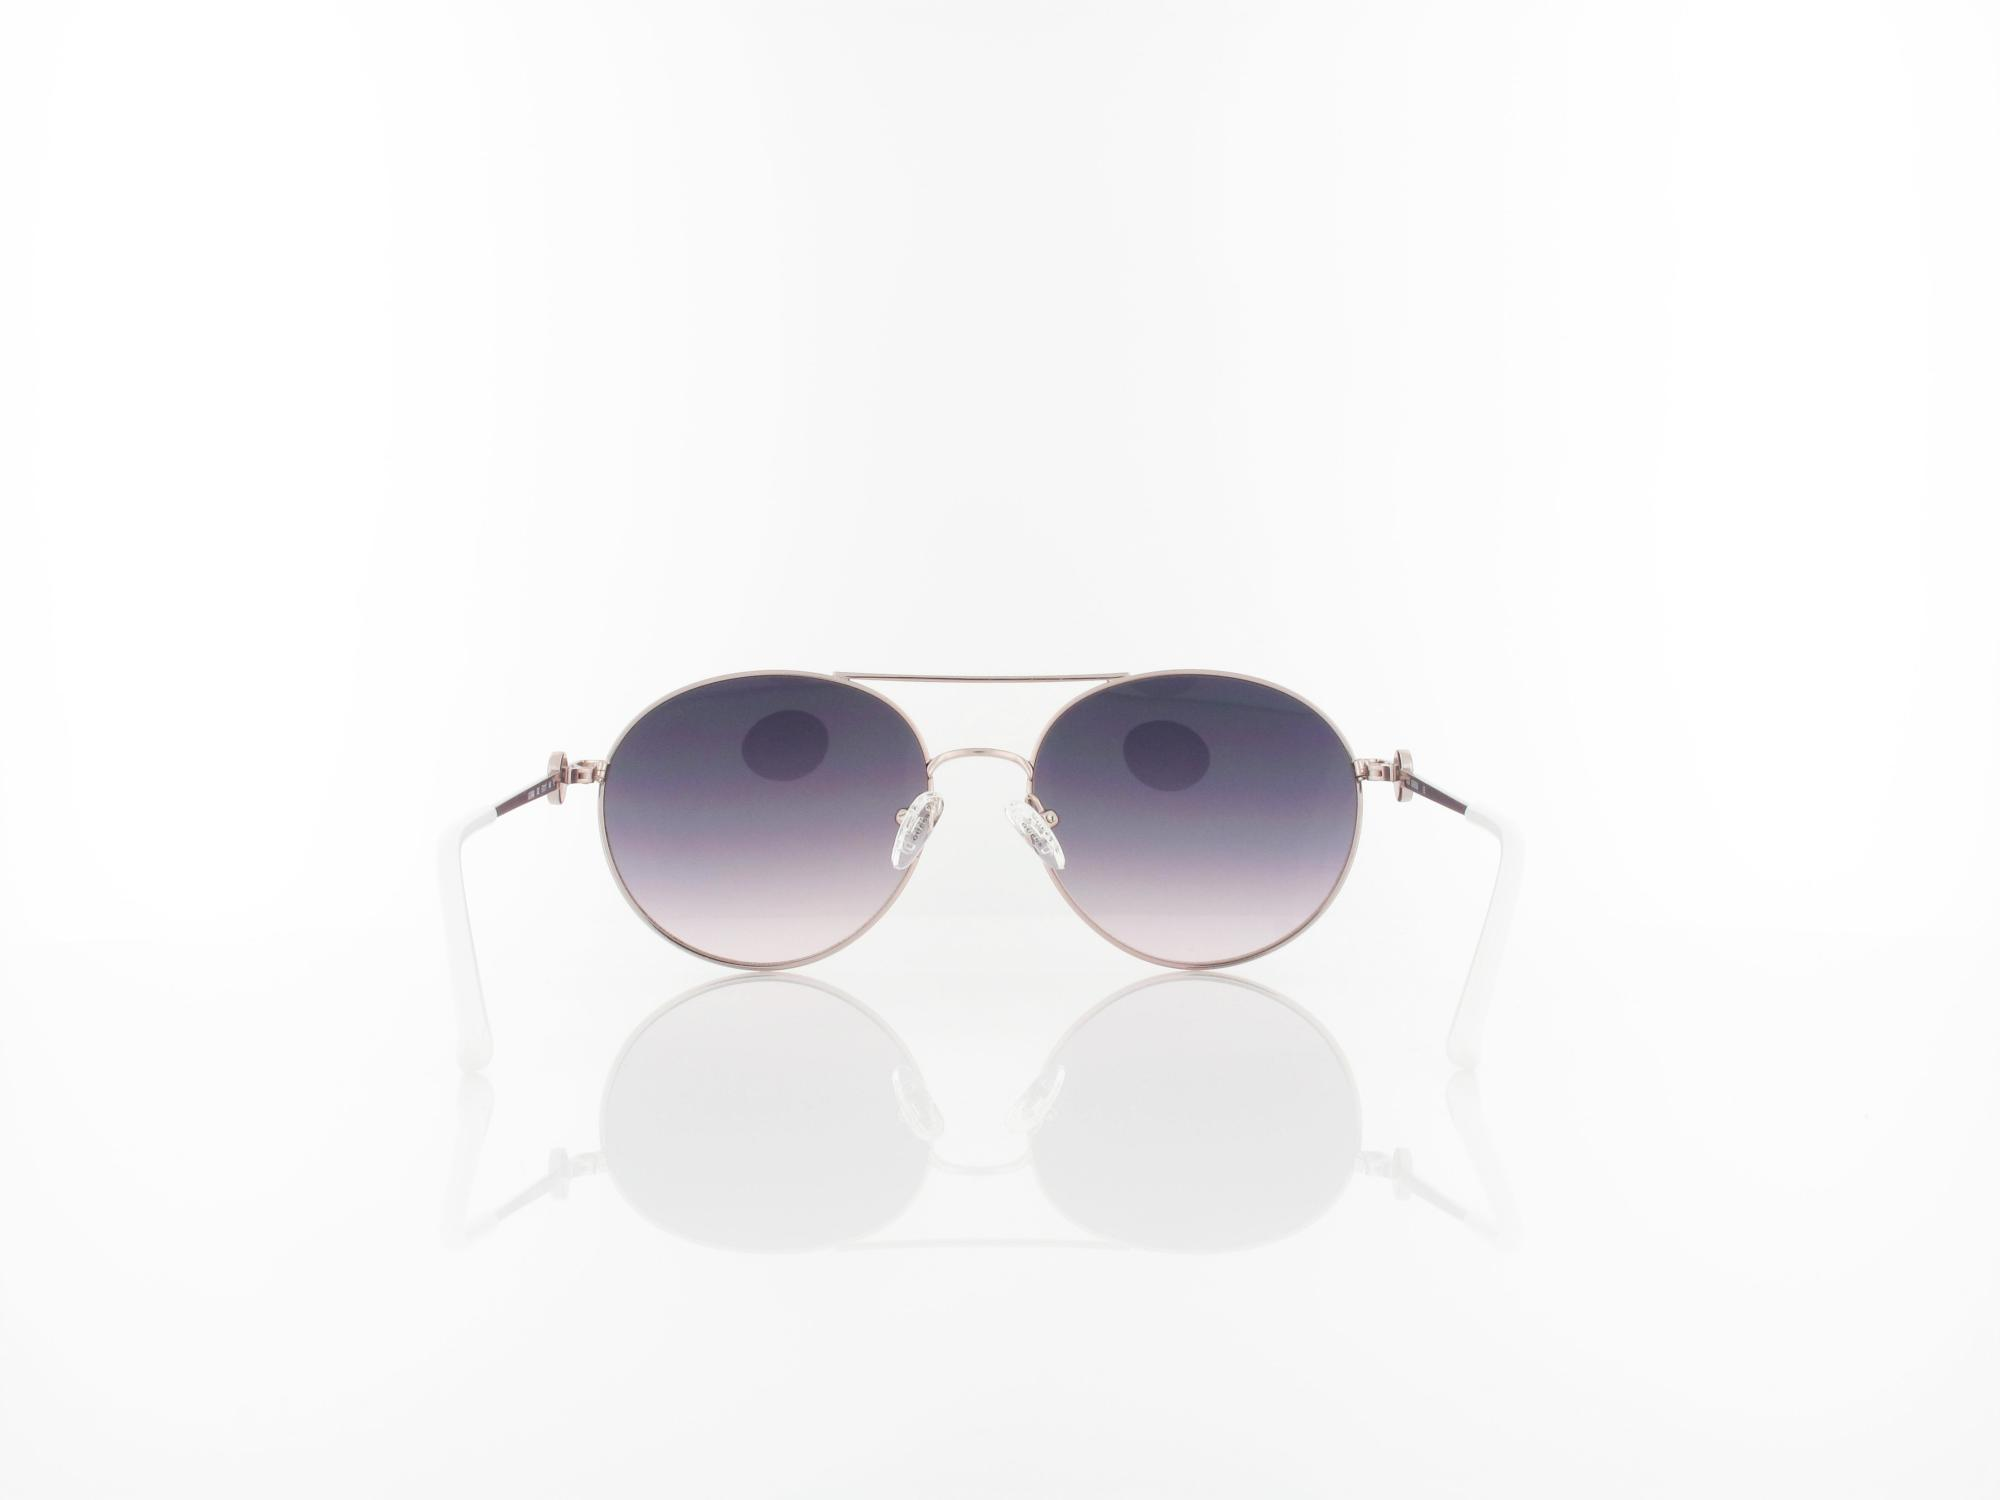 Guess | GU7640 78Z 57 | shiny purple / violet gradient mirror